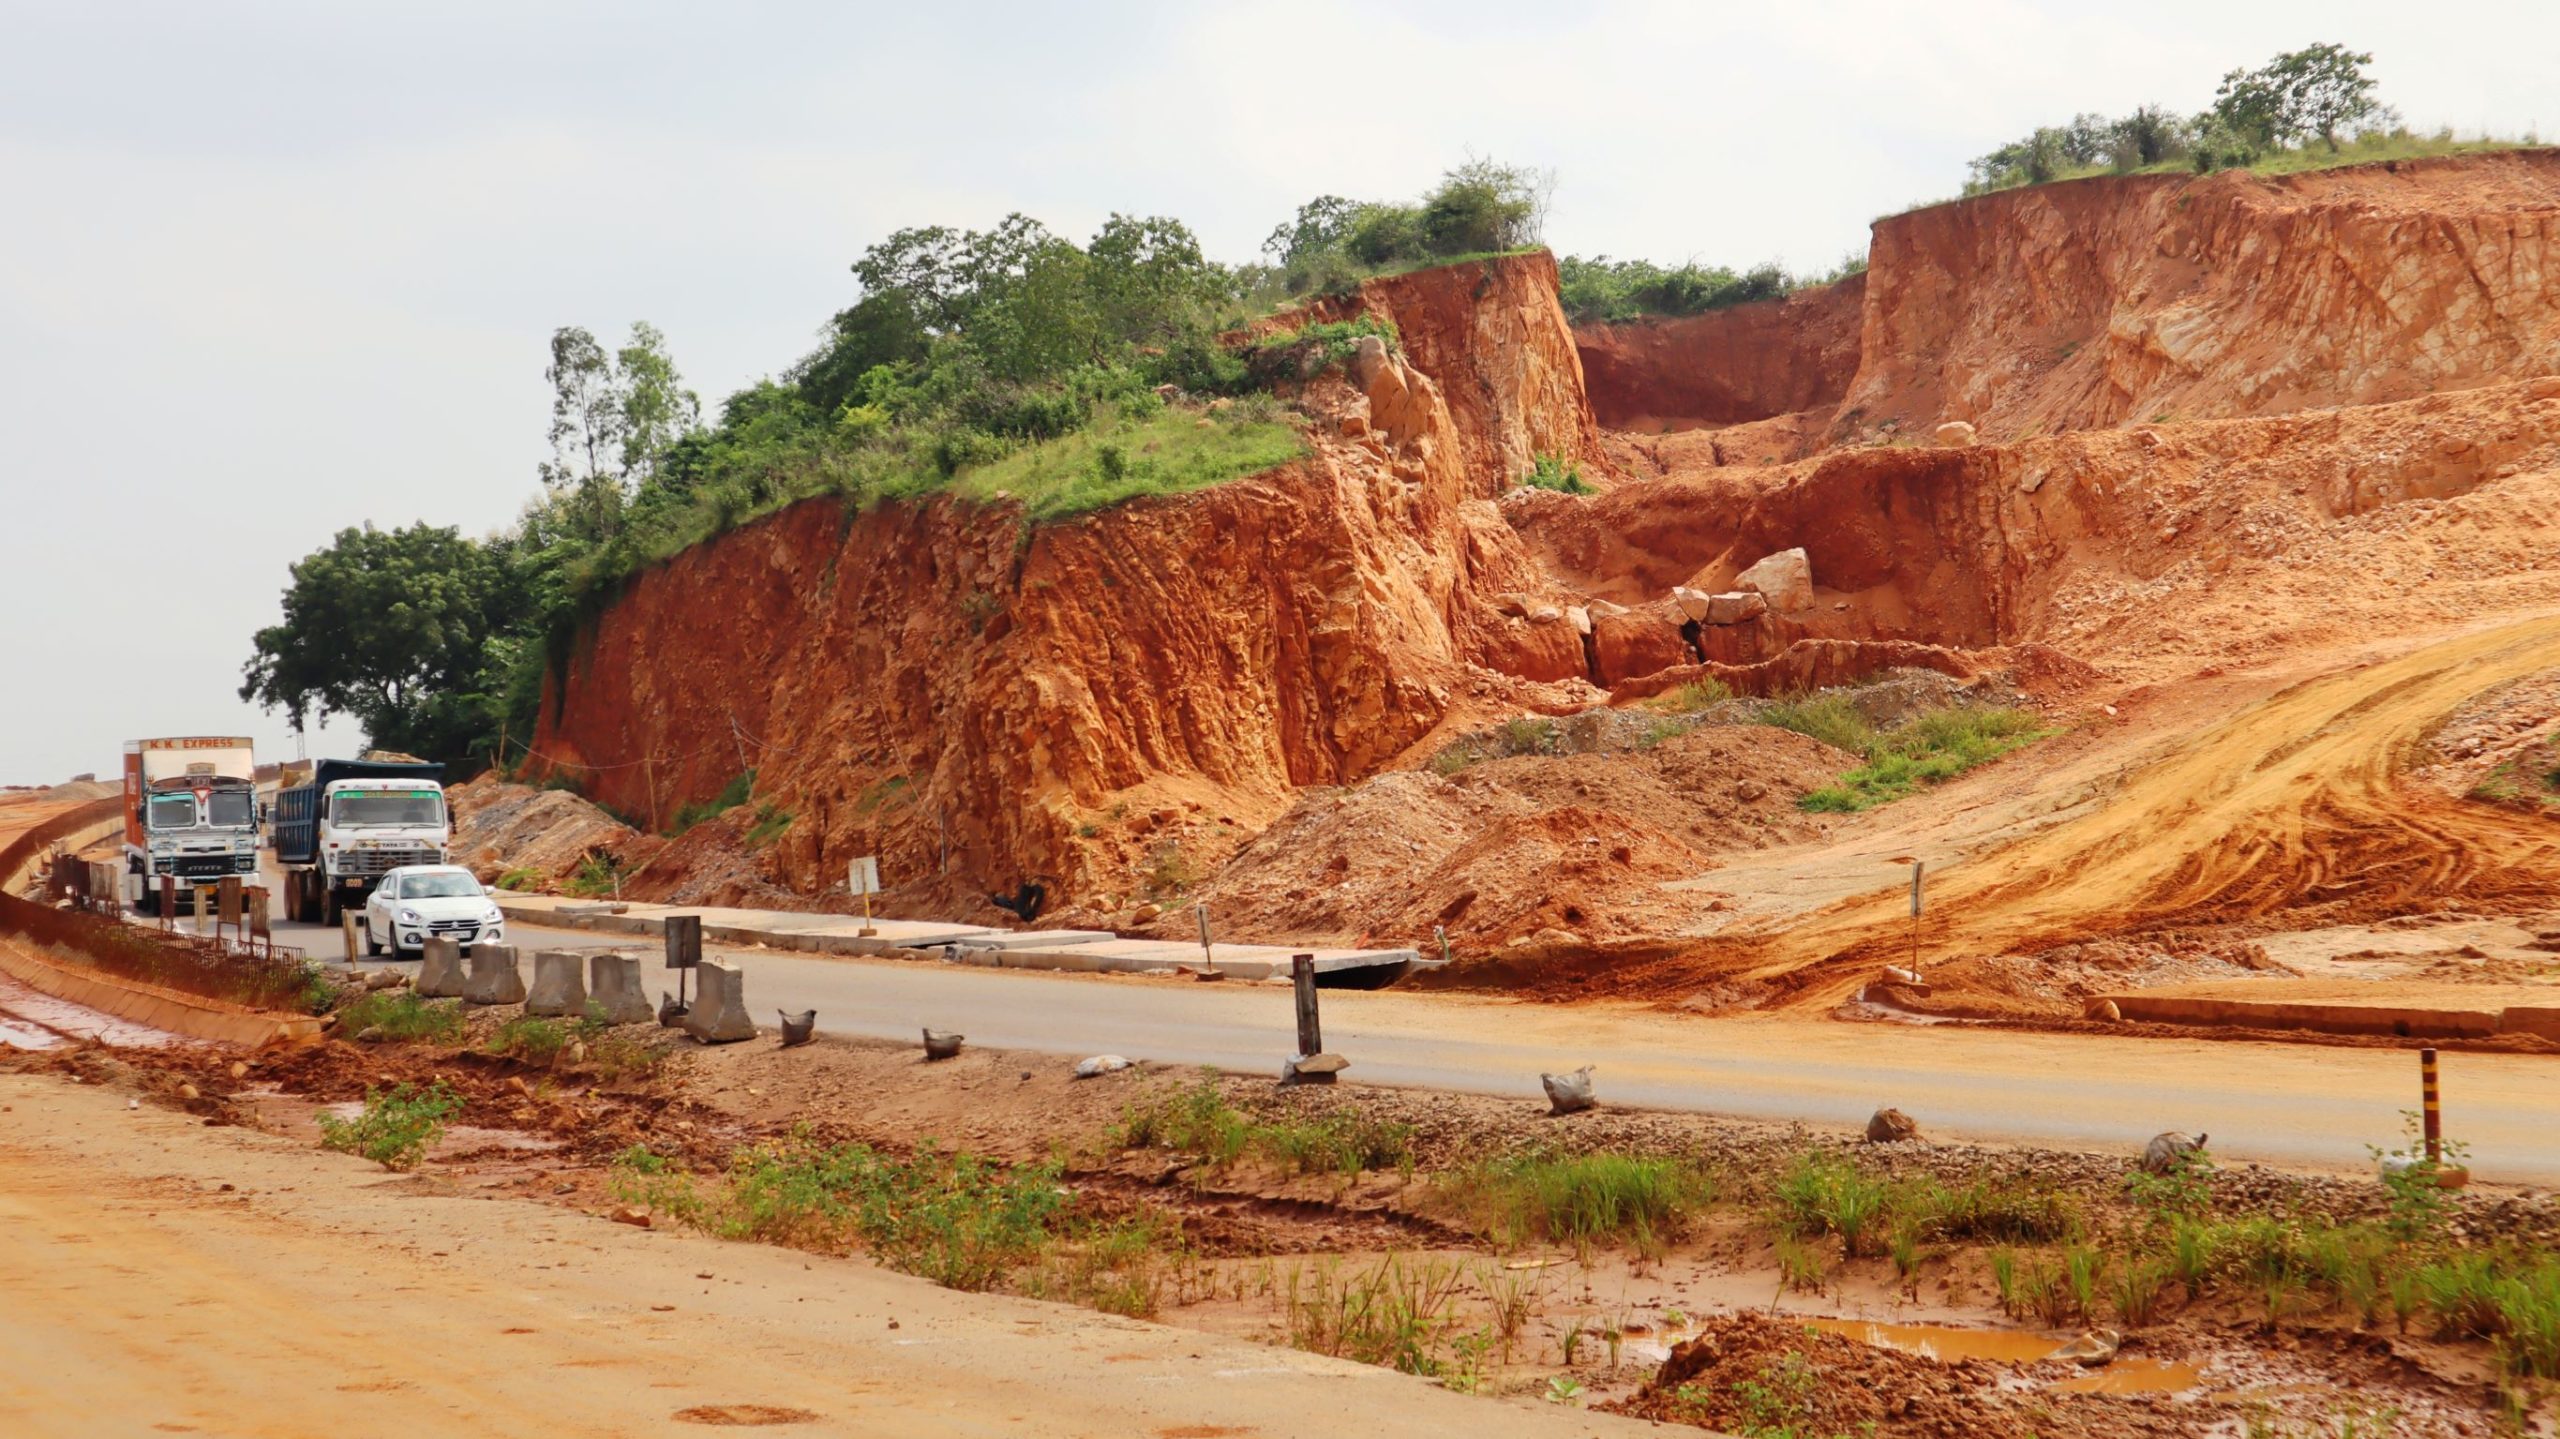 An active stone quarry near the national highway without any barricading or distance. Photo by Manish Kumar.